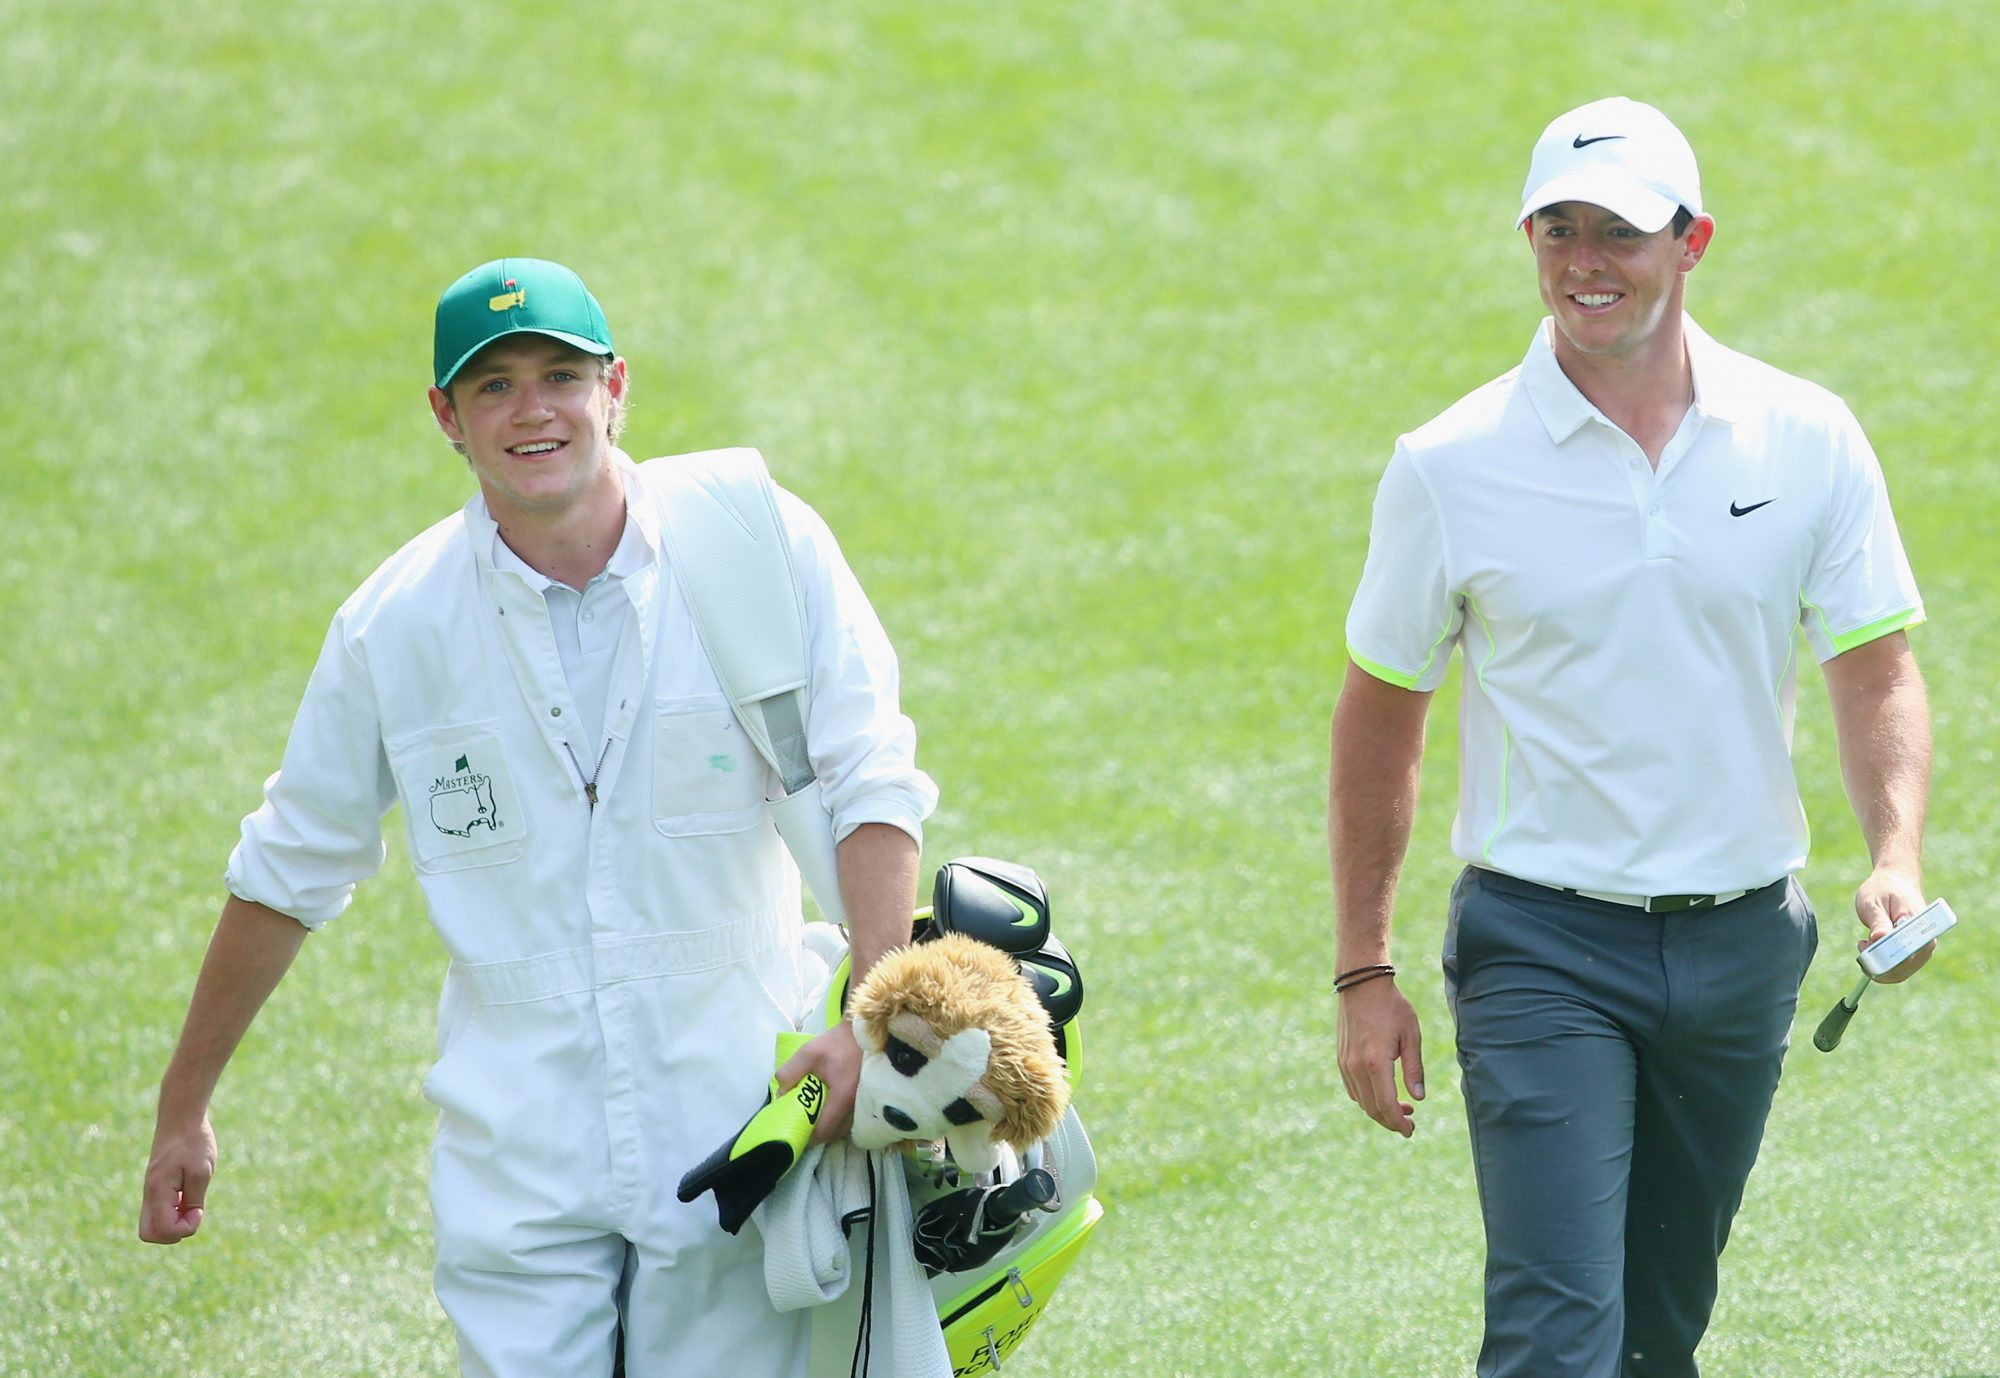 AUGUSTA, GA - APRIL 08:  Rory McIlroy of Northern Ireland walks alongside his caddie Niall Horan of the band One Direction during the Par 3 Contest prior to the start of the 2015 Masters Tournament at Augusta National Golf Club on April 8, 2015 in Augusta, Georgia.  (Photo by Andrew Redington/Getty Images)